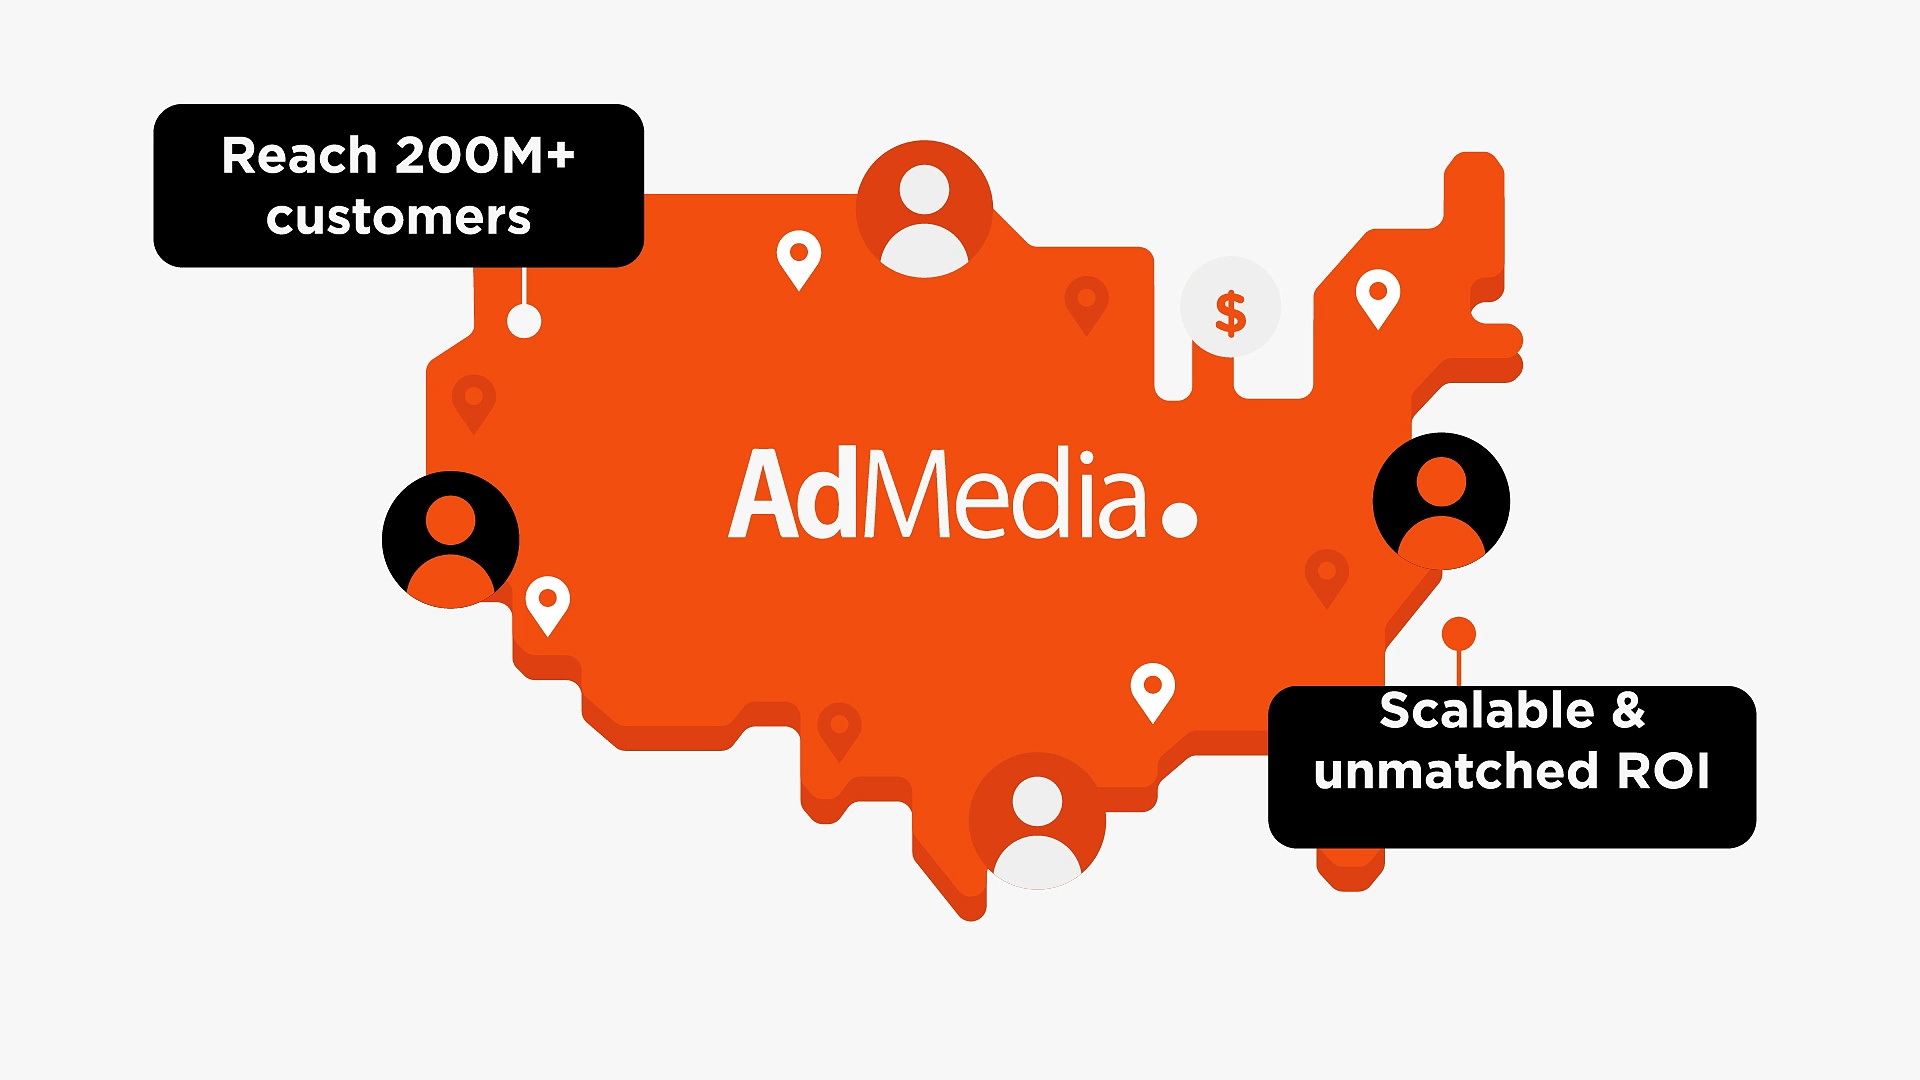 AdMedia Brings You top notch Online Advertising Services - AdMedia Brings You top-notch Online Advertising Services